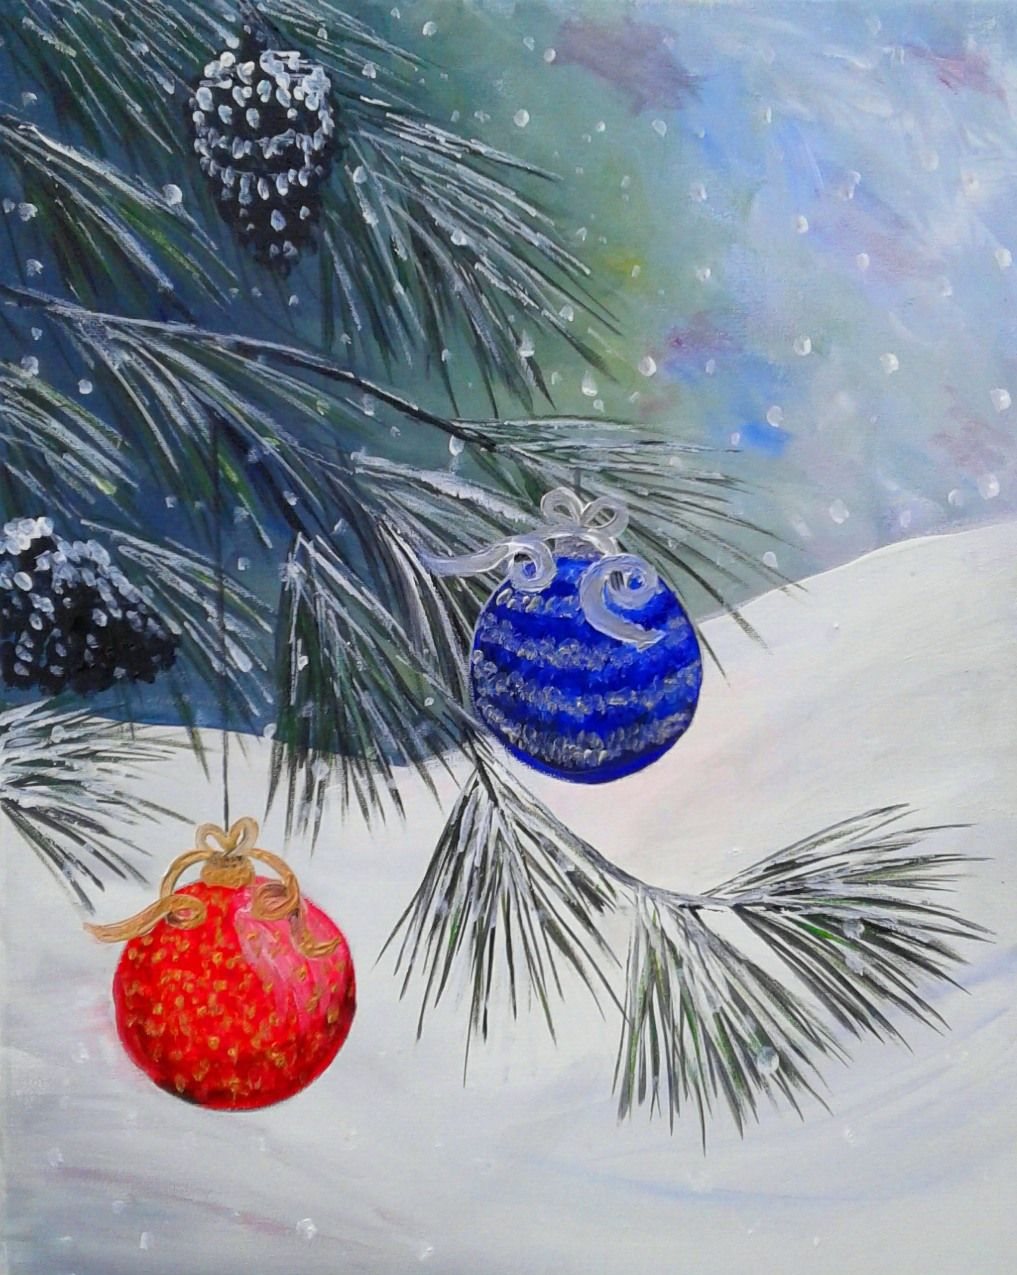 Pinot Noir Paint This Is The Painting We Will Be Doing At Our Next Paint Night It S An Easy Christmas Canvas Watercolor Christmas Cards Holiday Painting